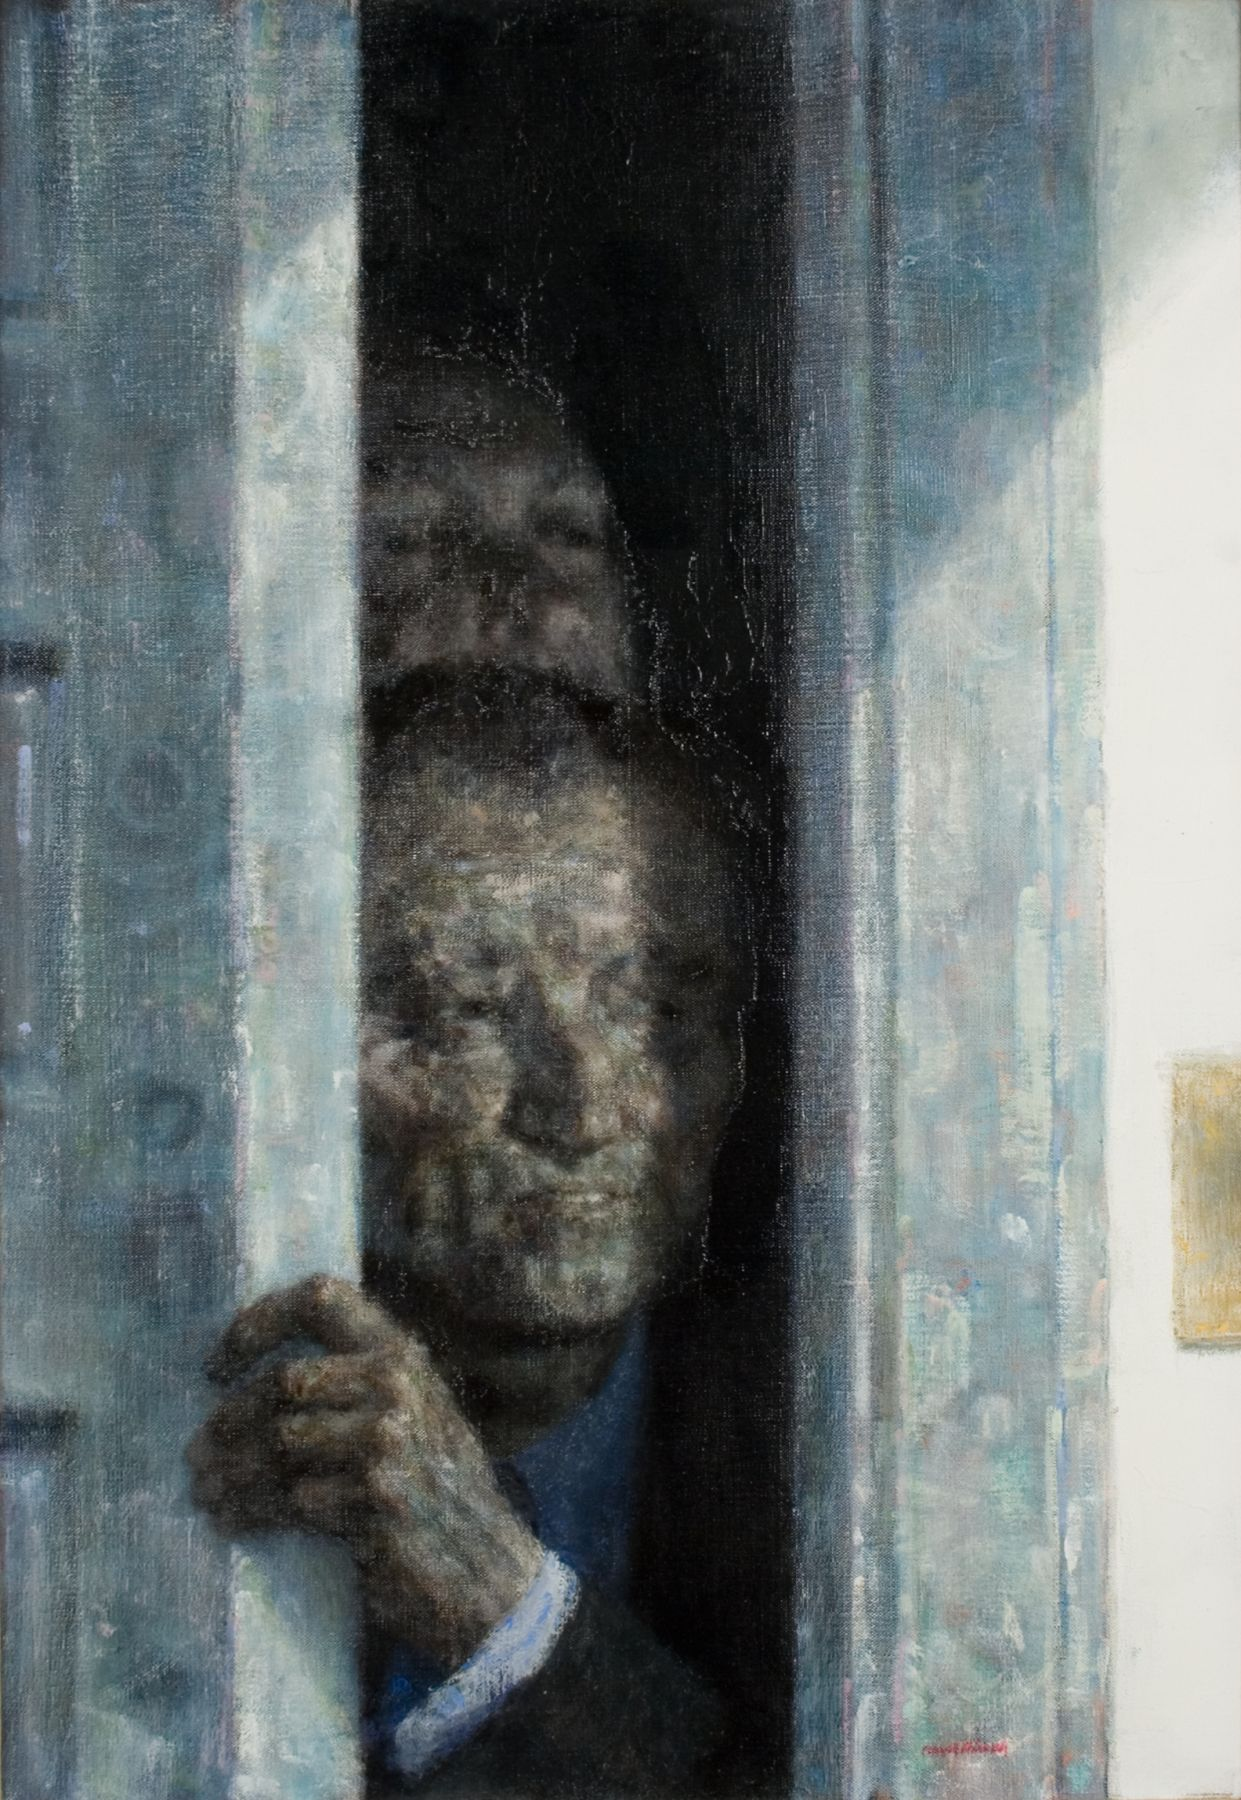 Joseph Hirsch, Visit, 1964, oil on canvas, 21 3/4 x 15 inches